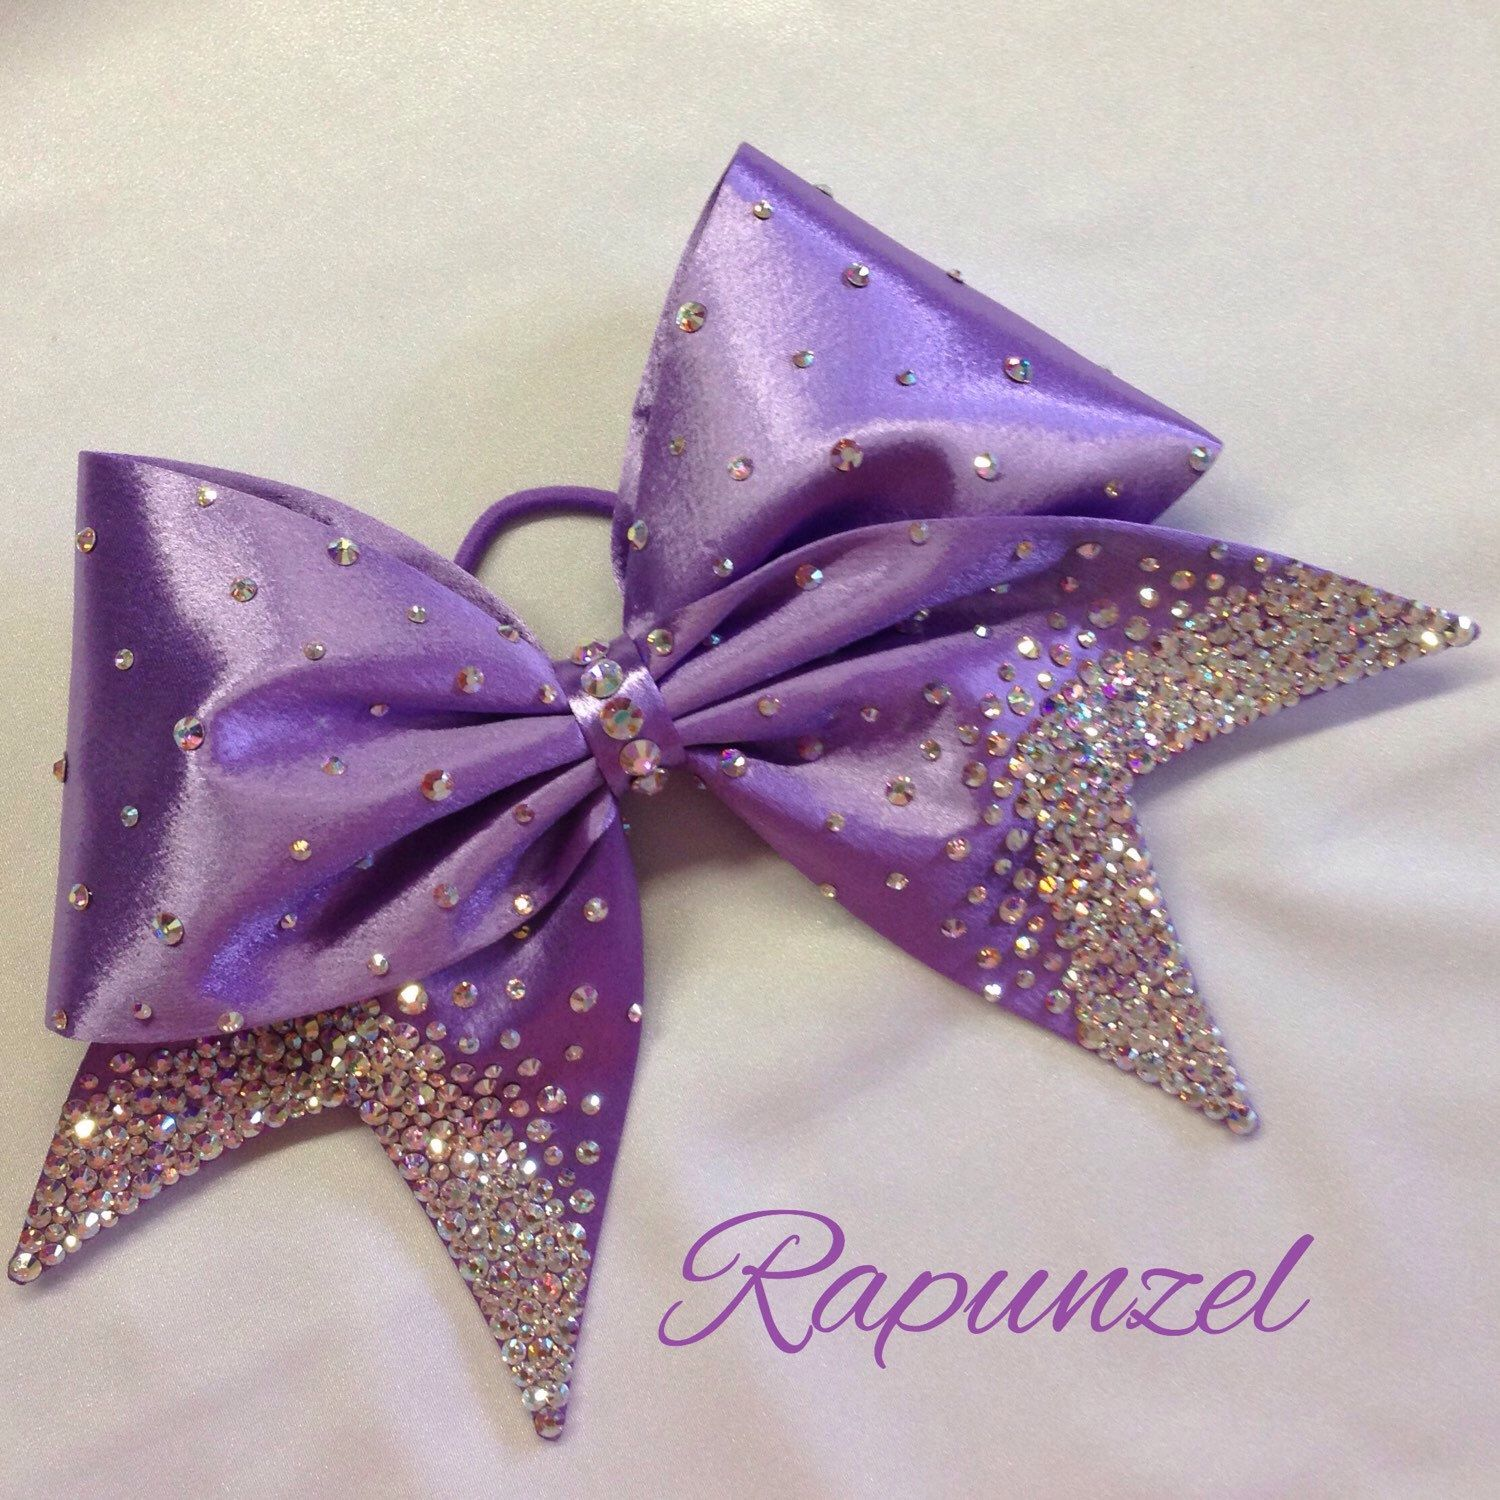 Cheer bow holder for cheer bows and hair bows cheer bow hanger - Items Similar To Rapunzel Hand Sewn Fabric Cheer Bow On Etsy